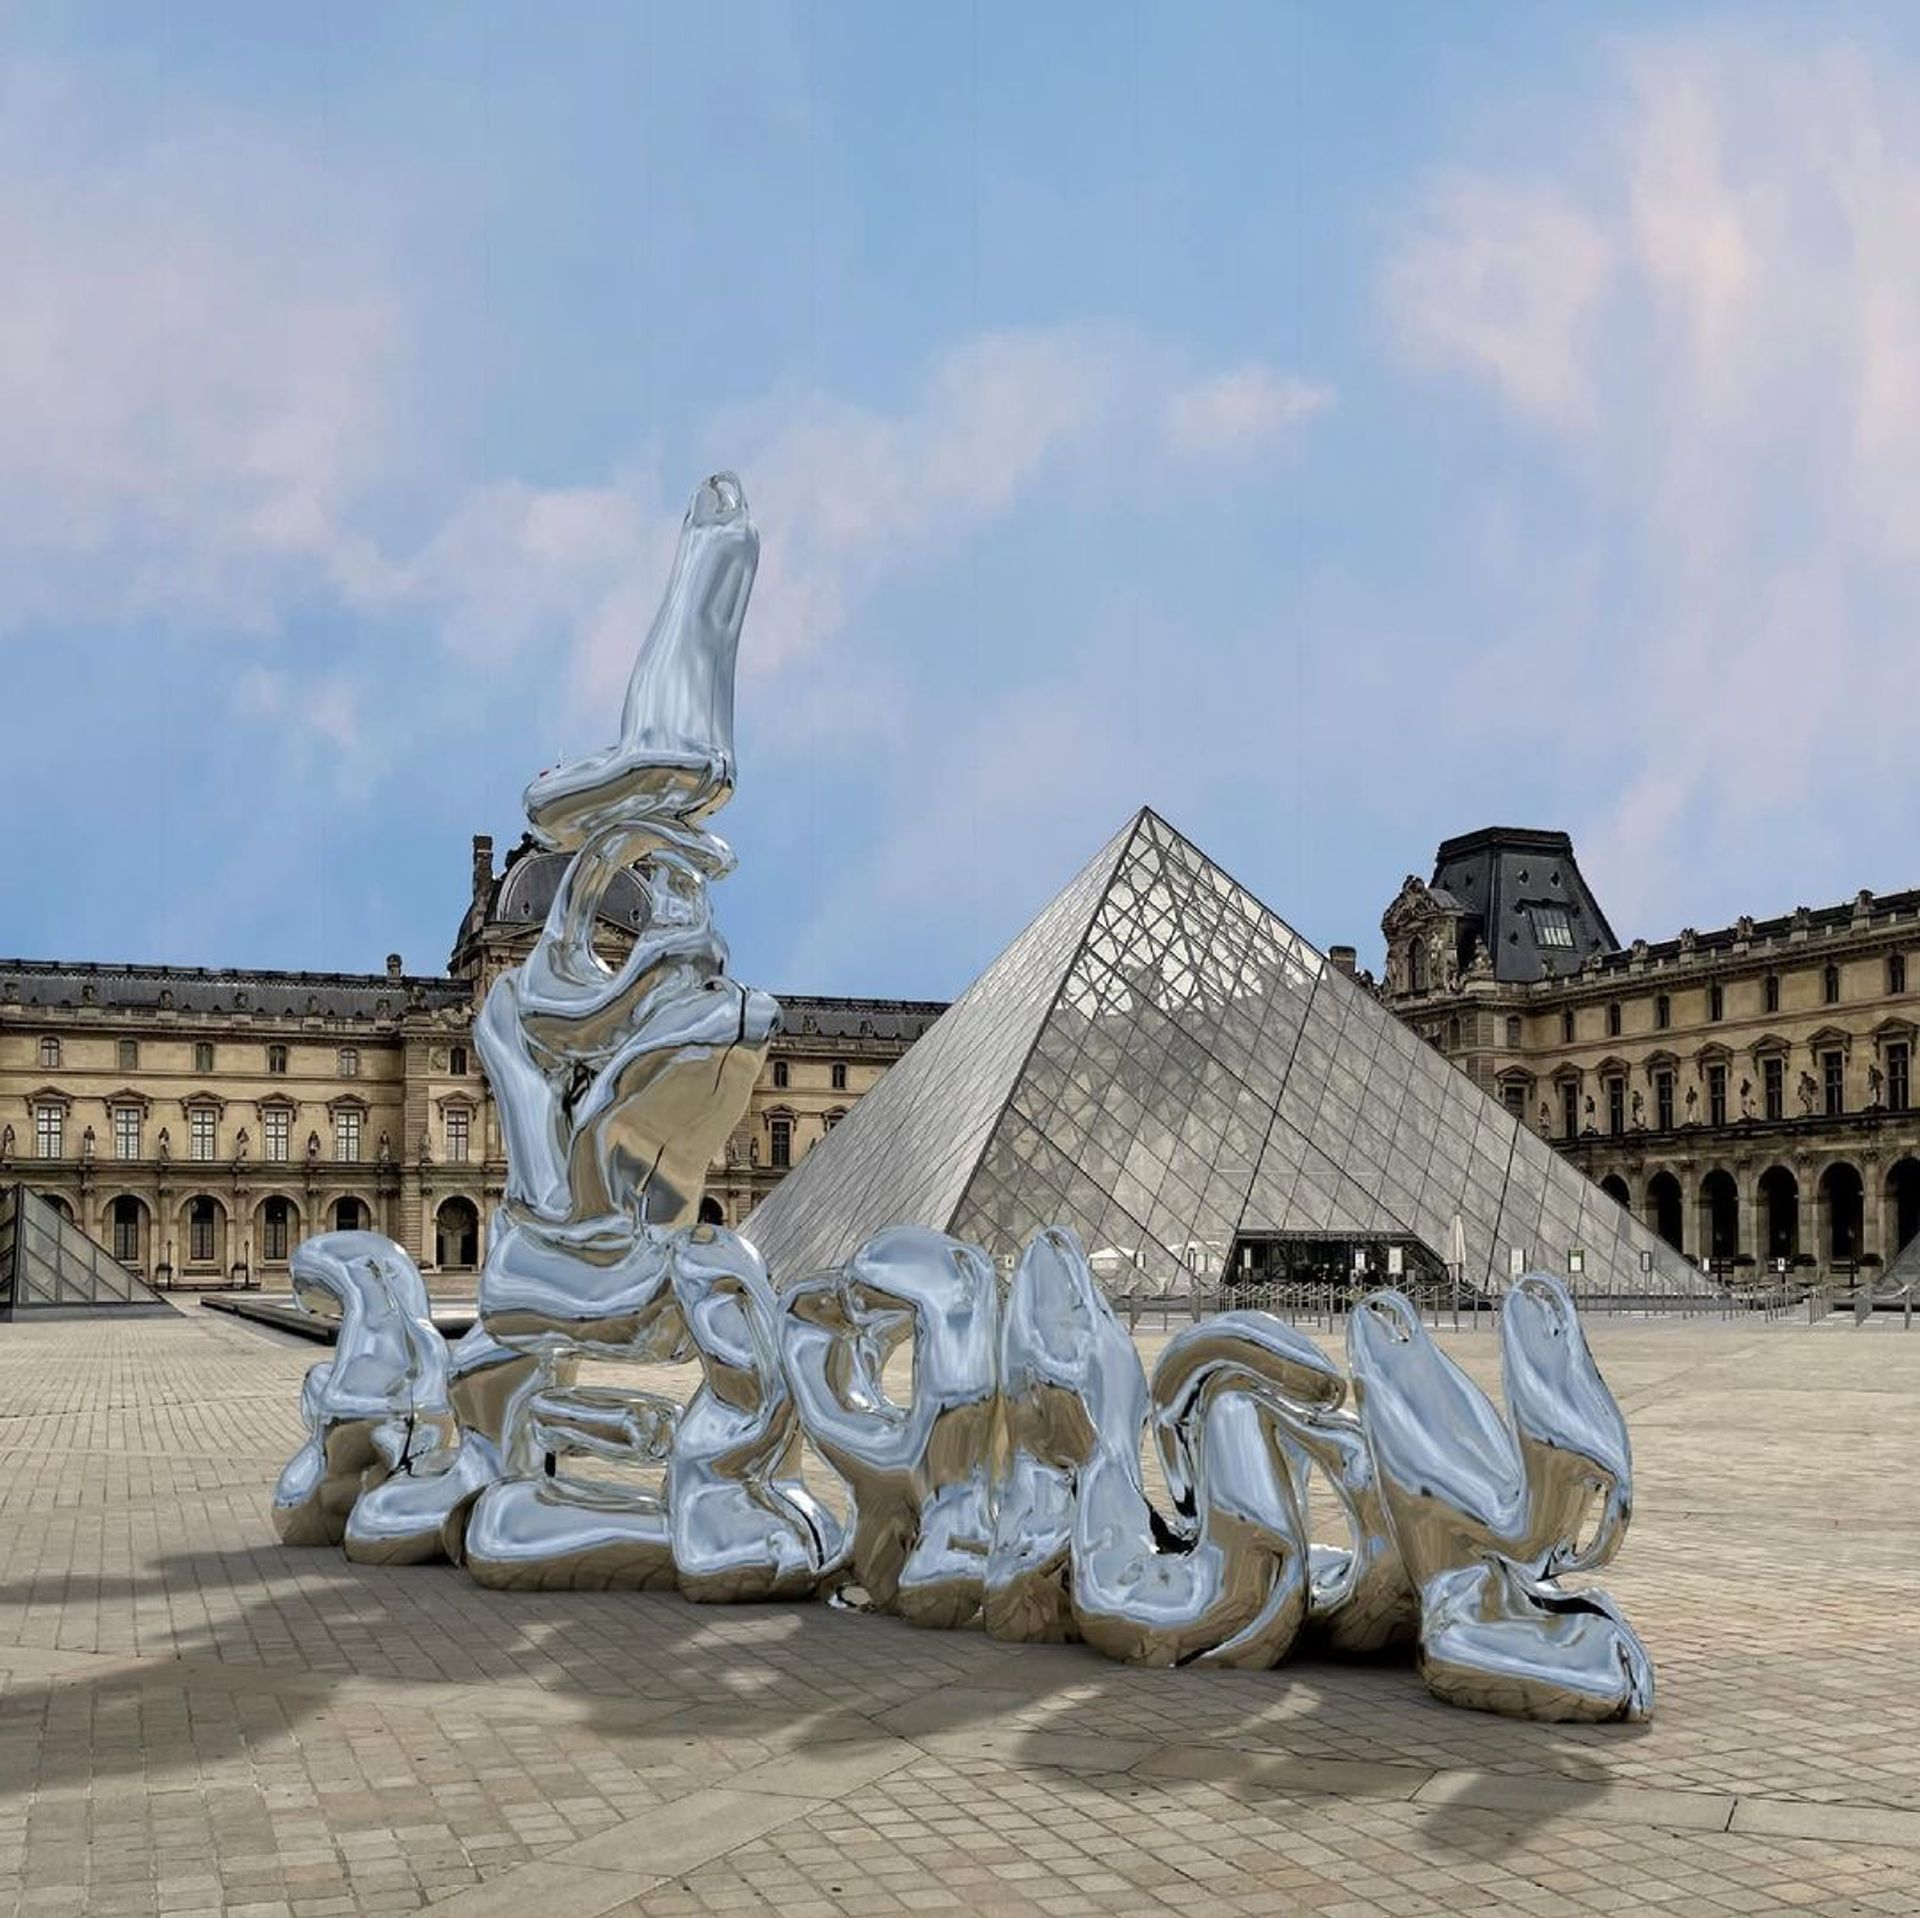 Andy Picci's digital work Love Yourself, visible by using a smartphone near the Louvre pyramid in Paris, is part of CADAF's Digital Art Month Image: Andy Picci